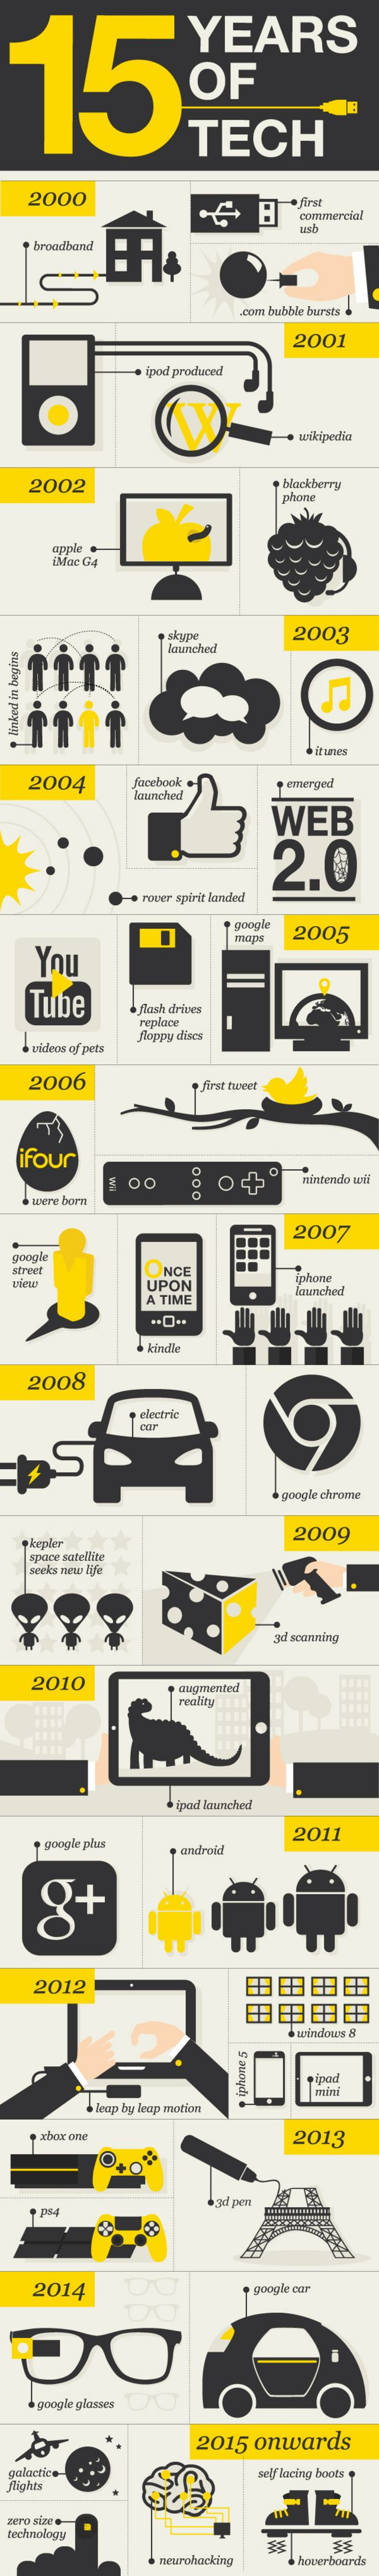 15 Years of Tech #infographic #Technology #Tech #History